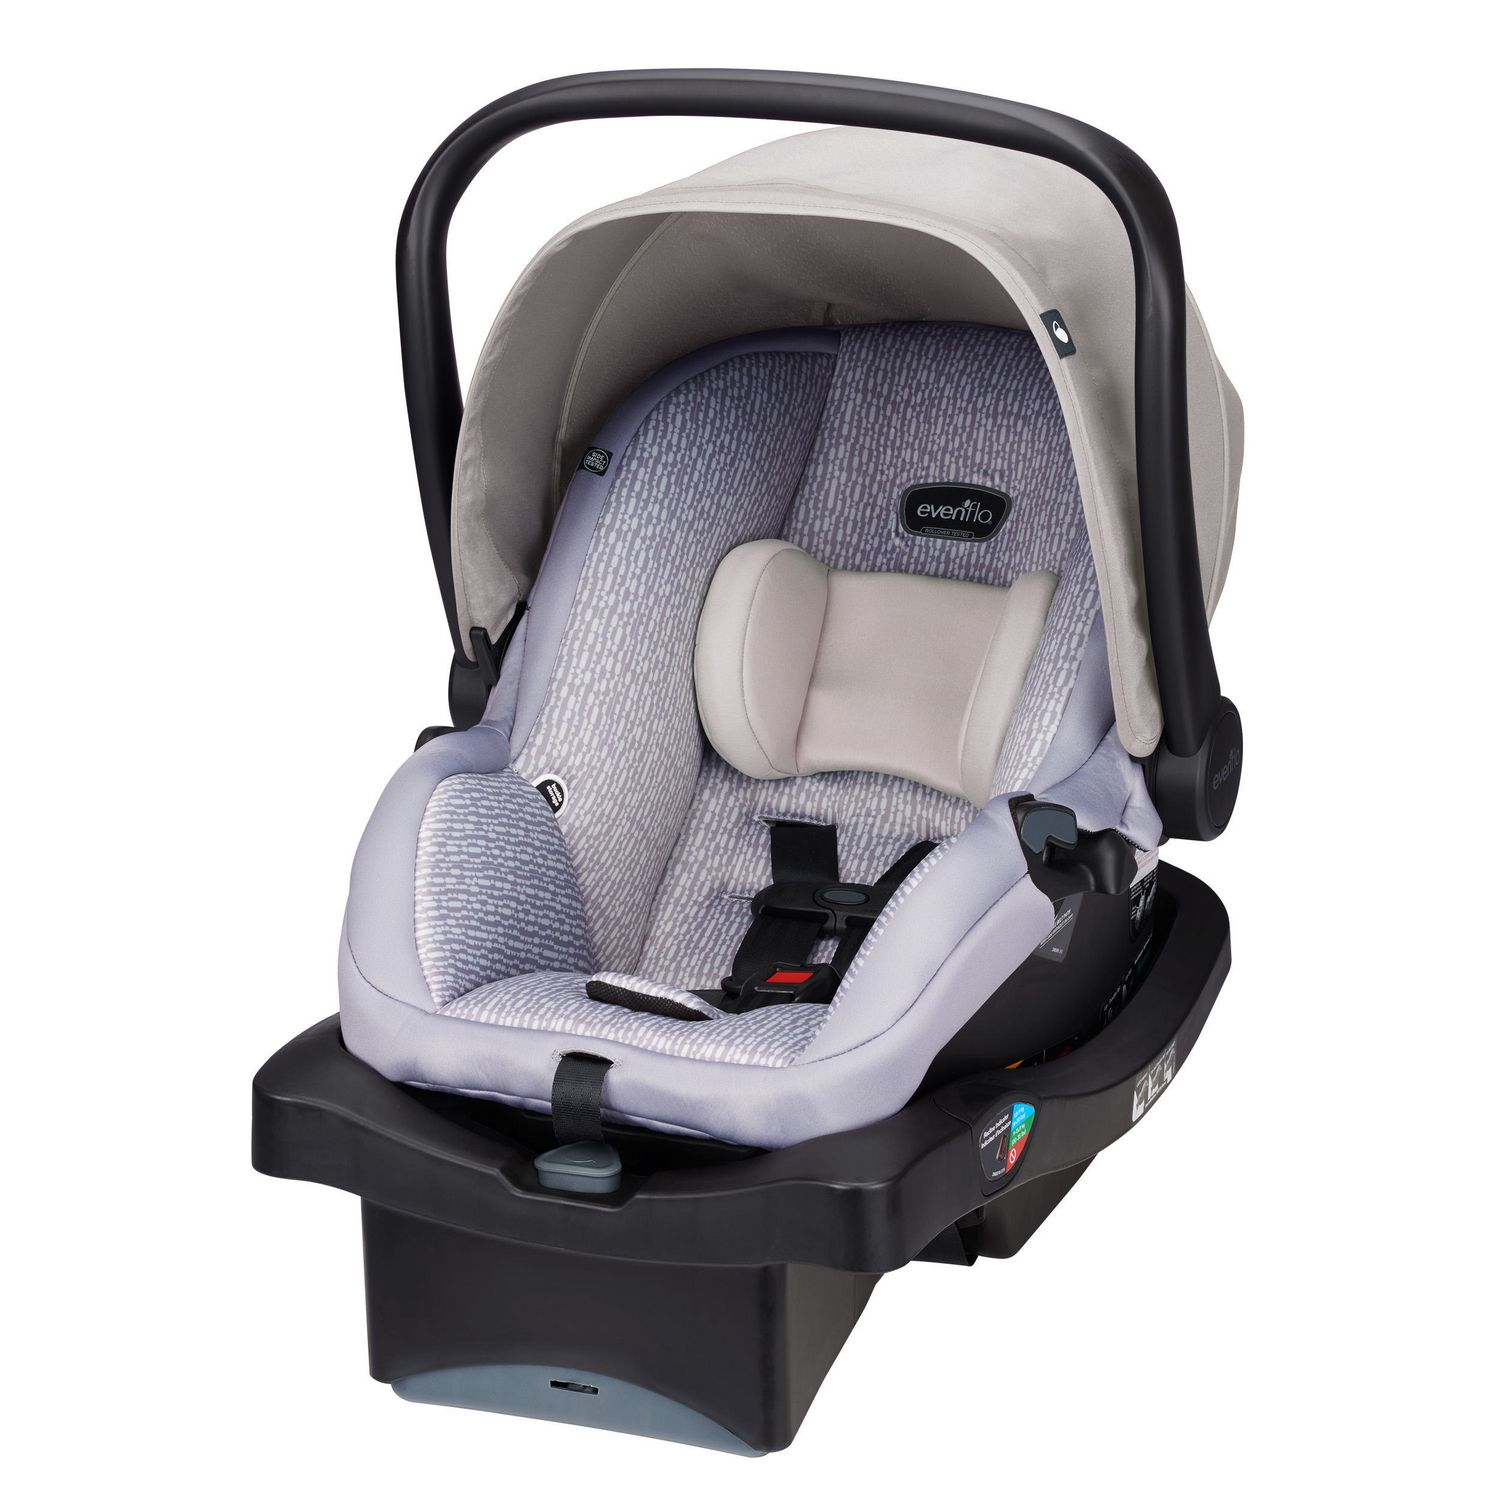 Black and tan Evenflo LiteMax infant car seat - best infant car seat